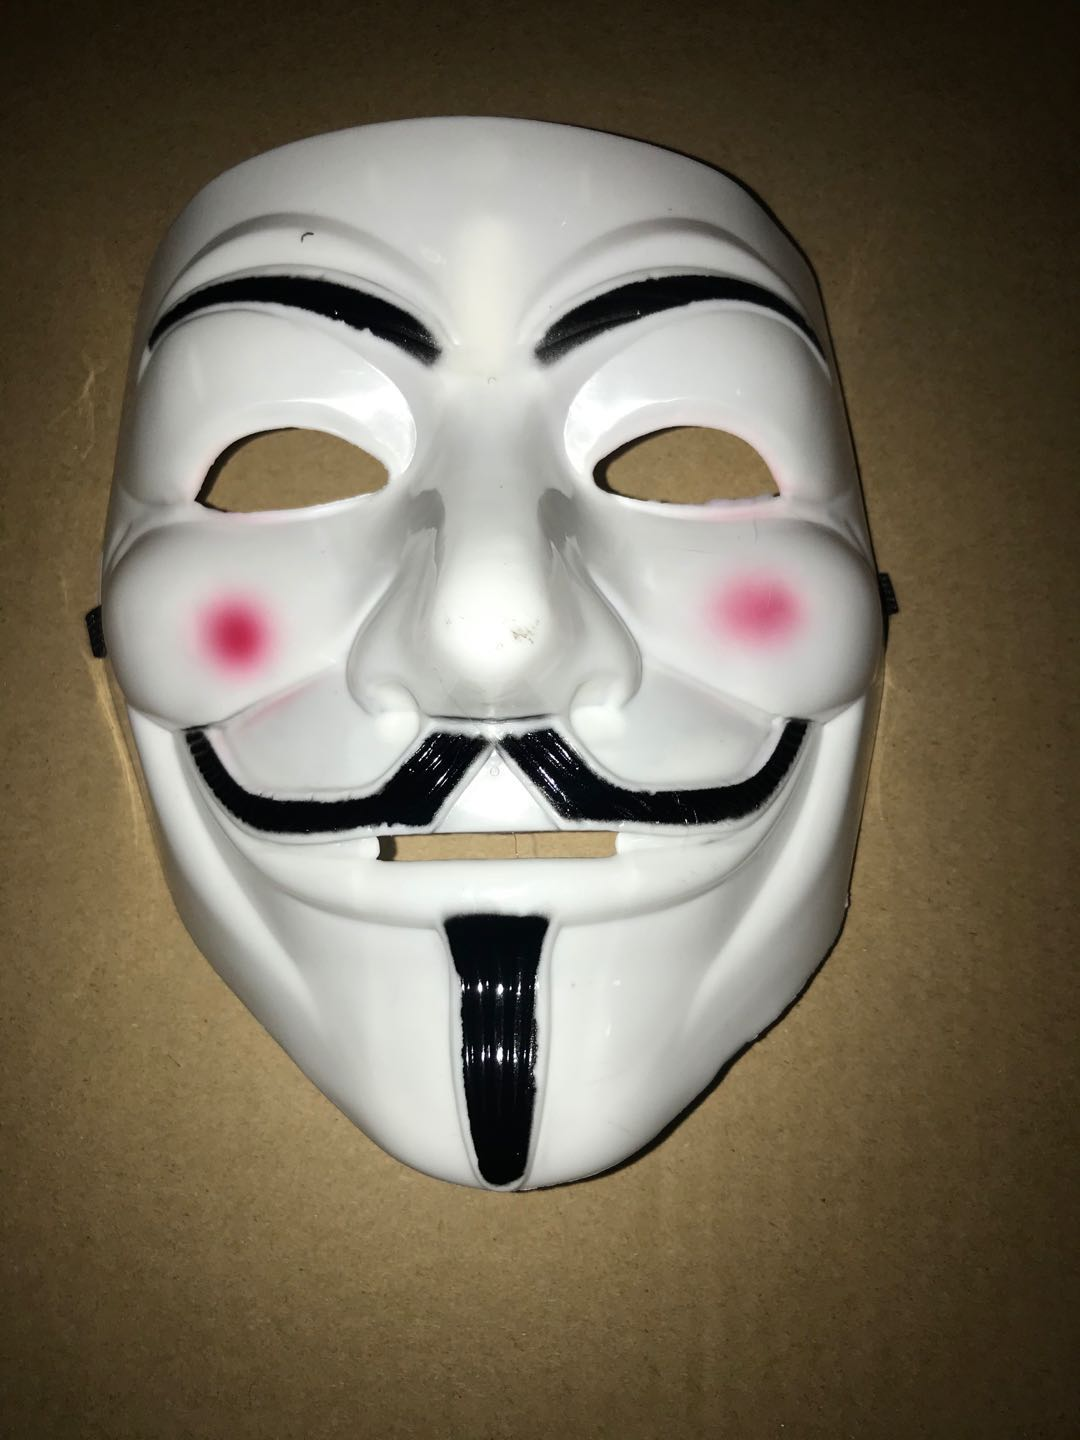 halloween factory directly cheap V-Vendetta cosplay mask